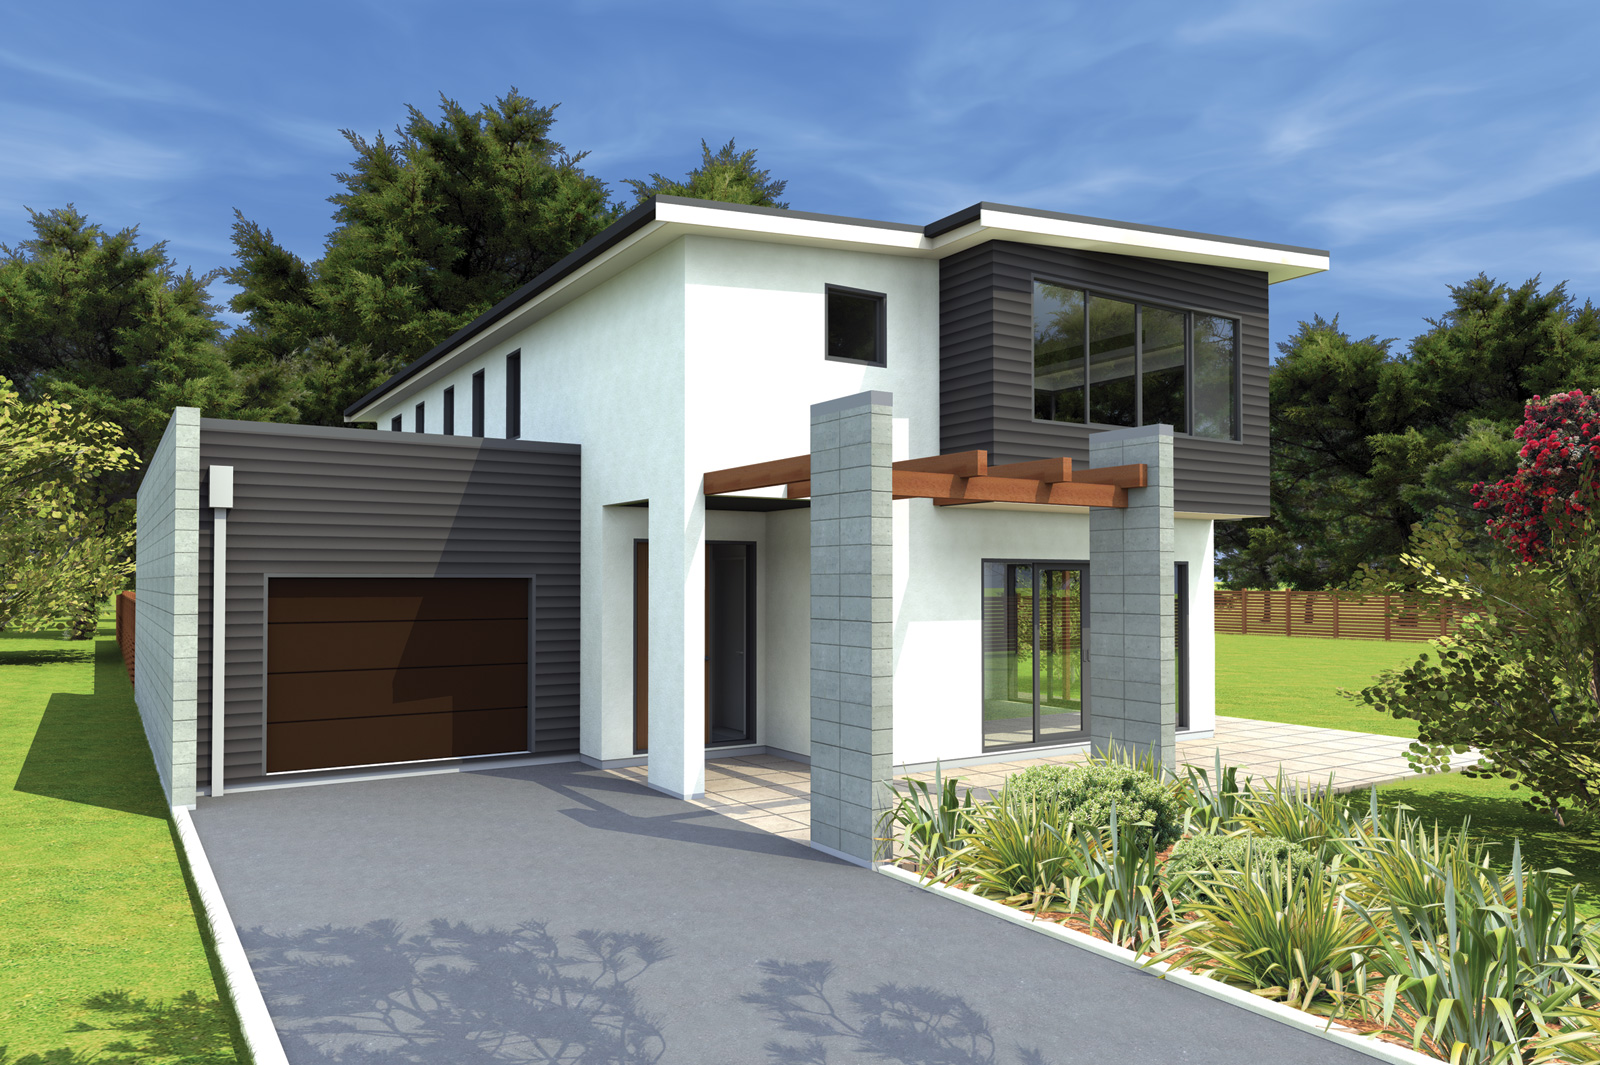 New home designs latest new modern homes designs new for New modern building design